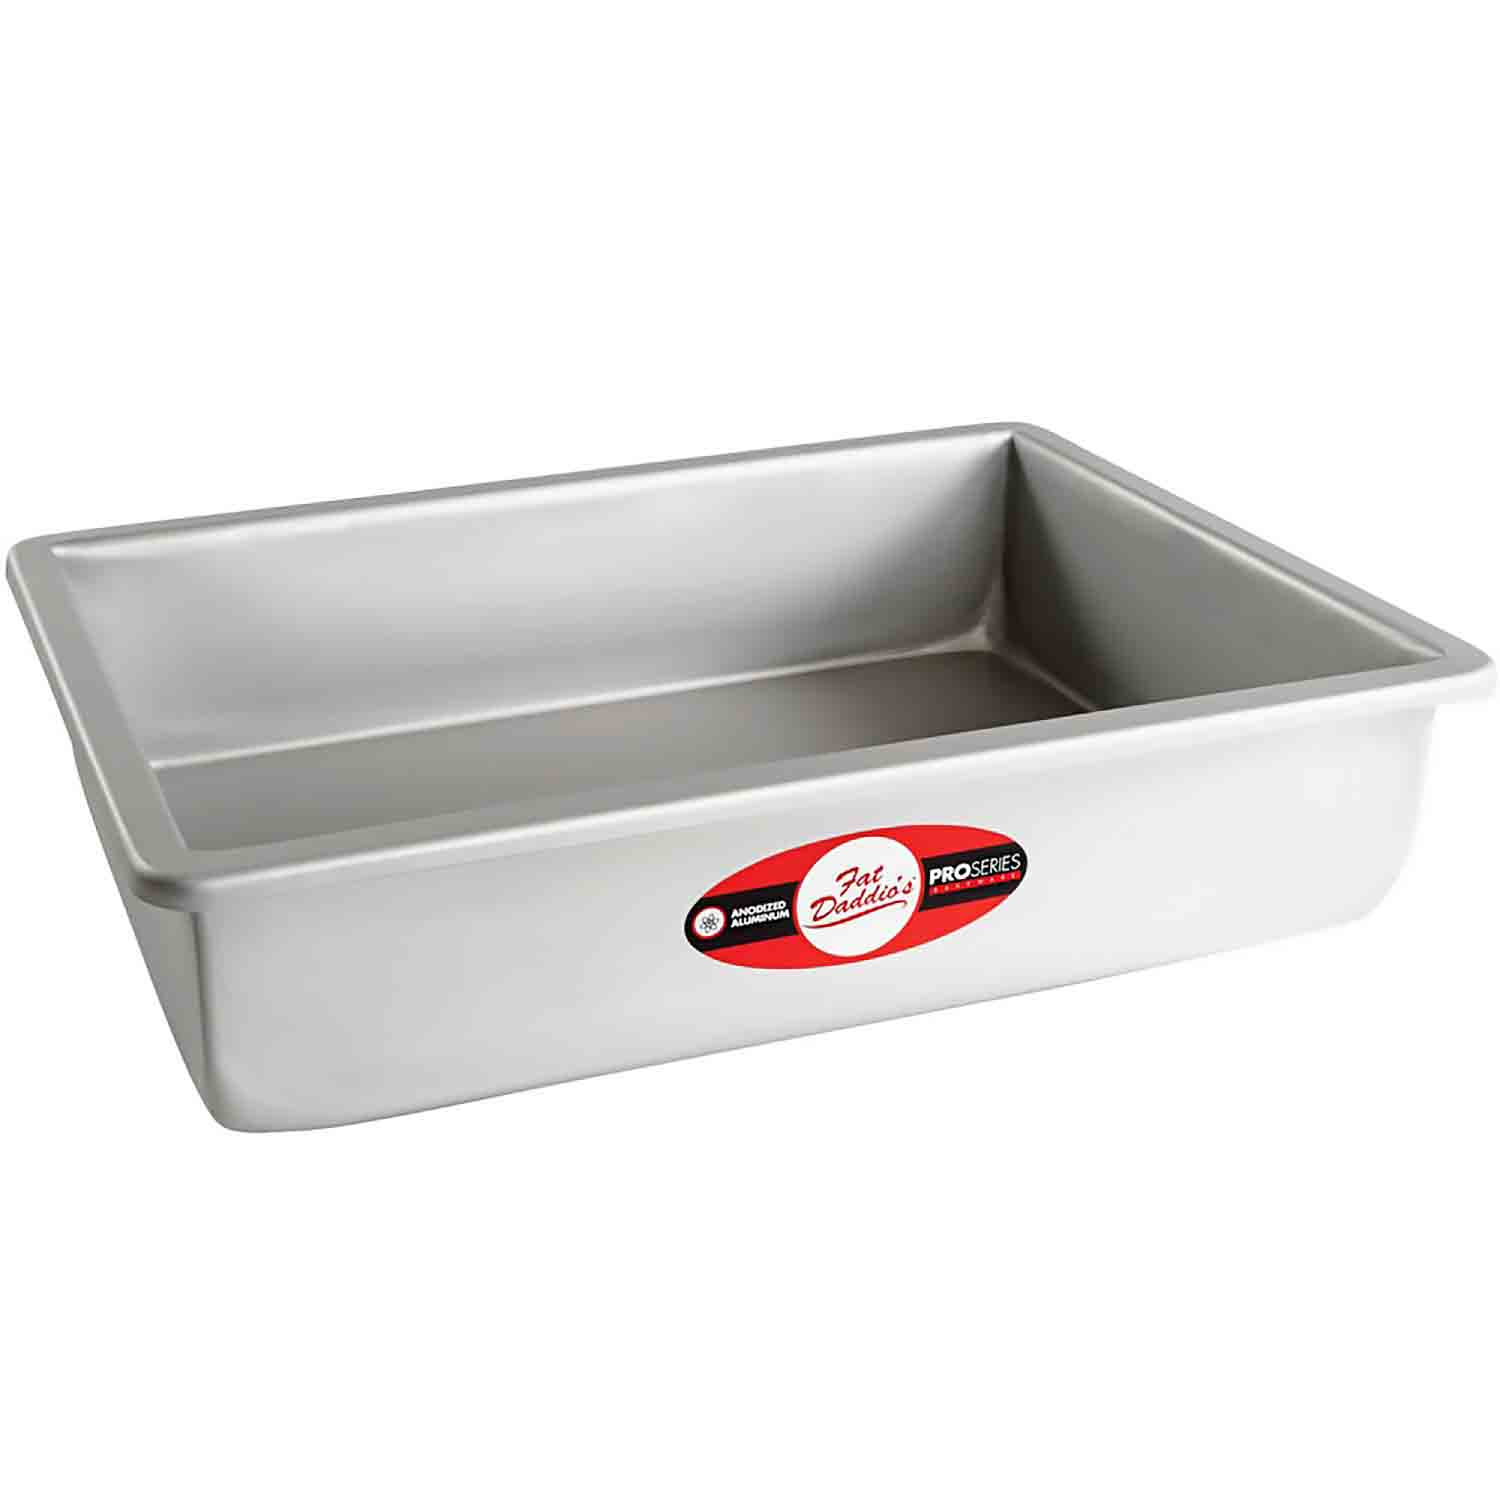 "9"" x 13"" x 3"" Quarter Sheet Cake Pan"